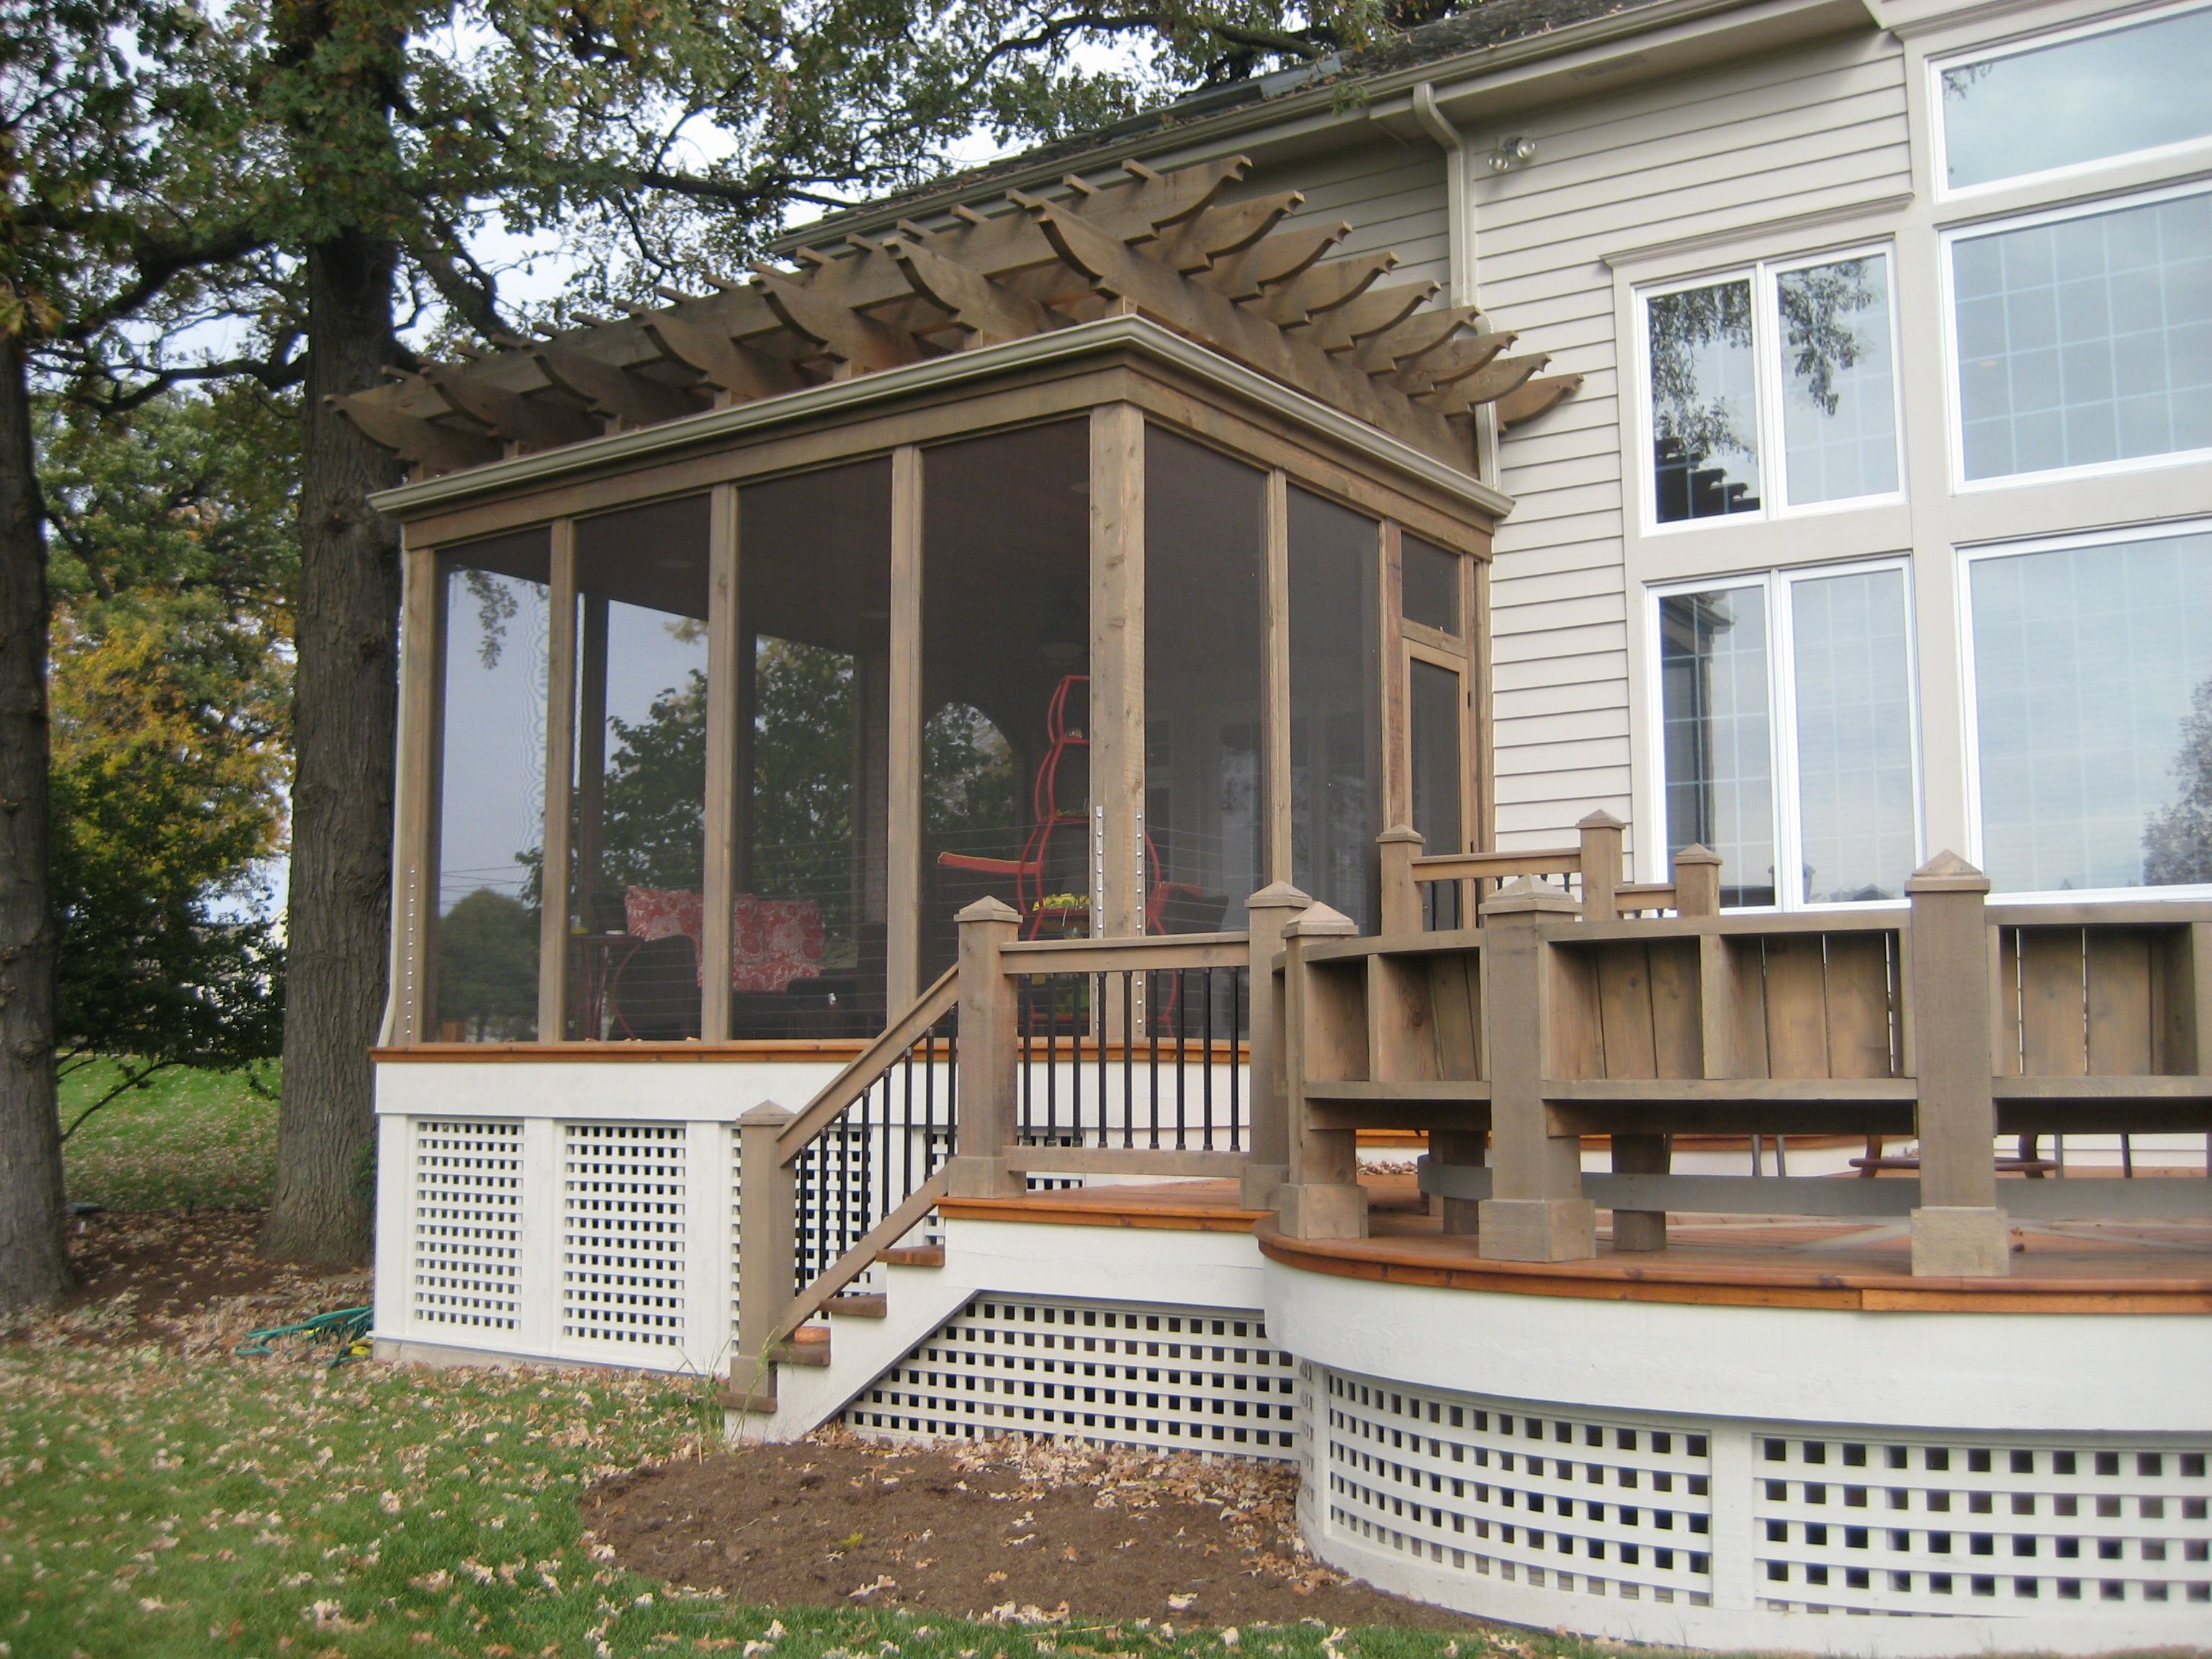 Mccloud associates llc screened porch with pergola roof architecture by mccloud - Screen porch roof set ...